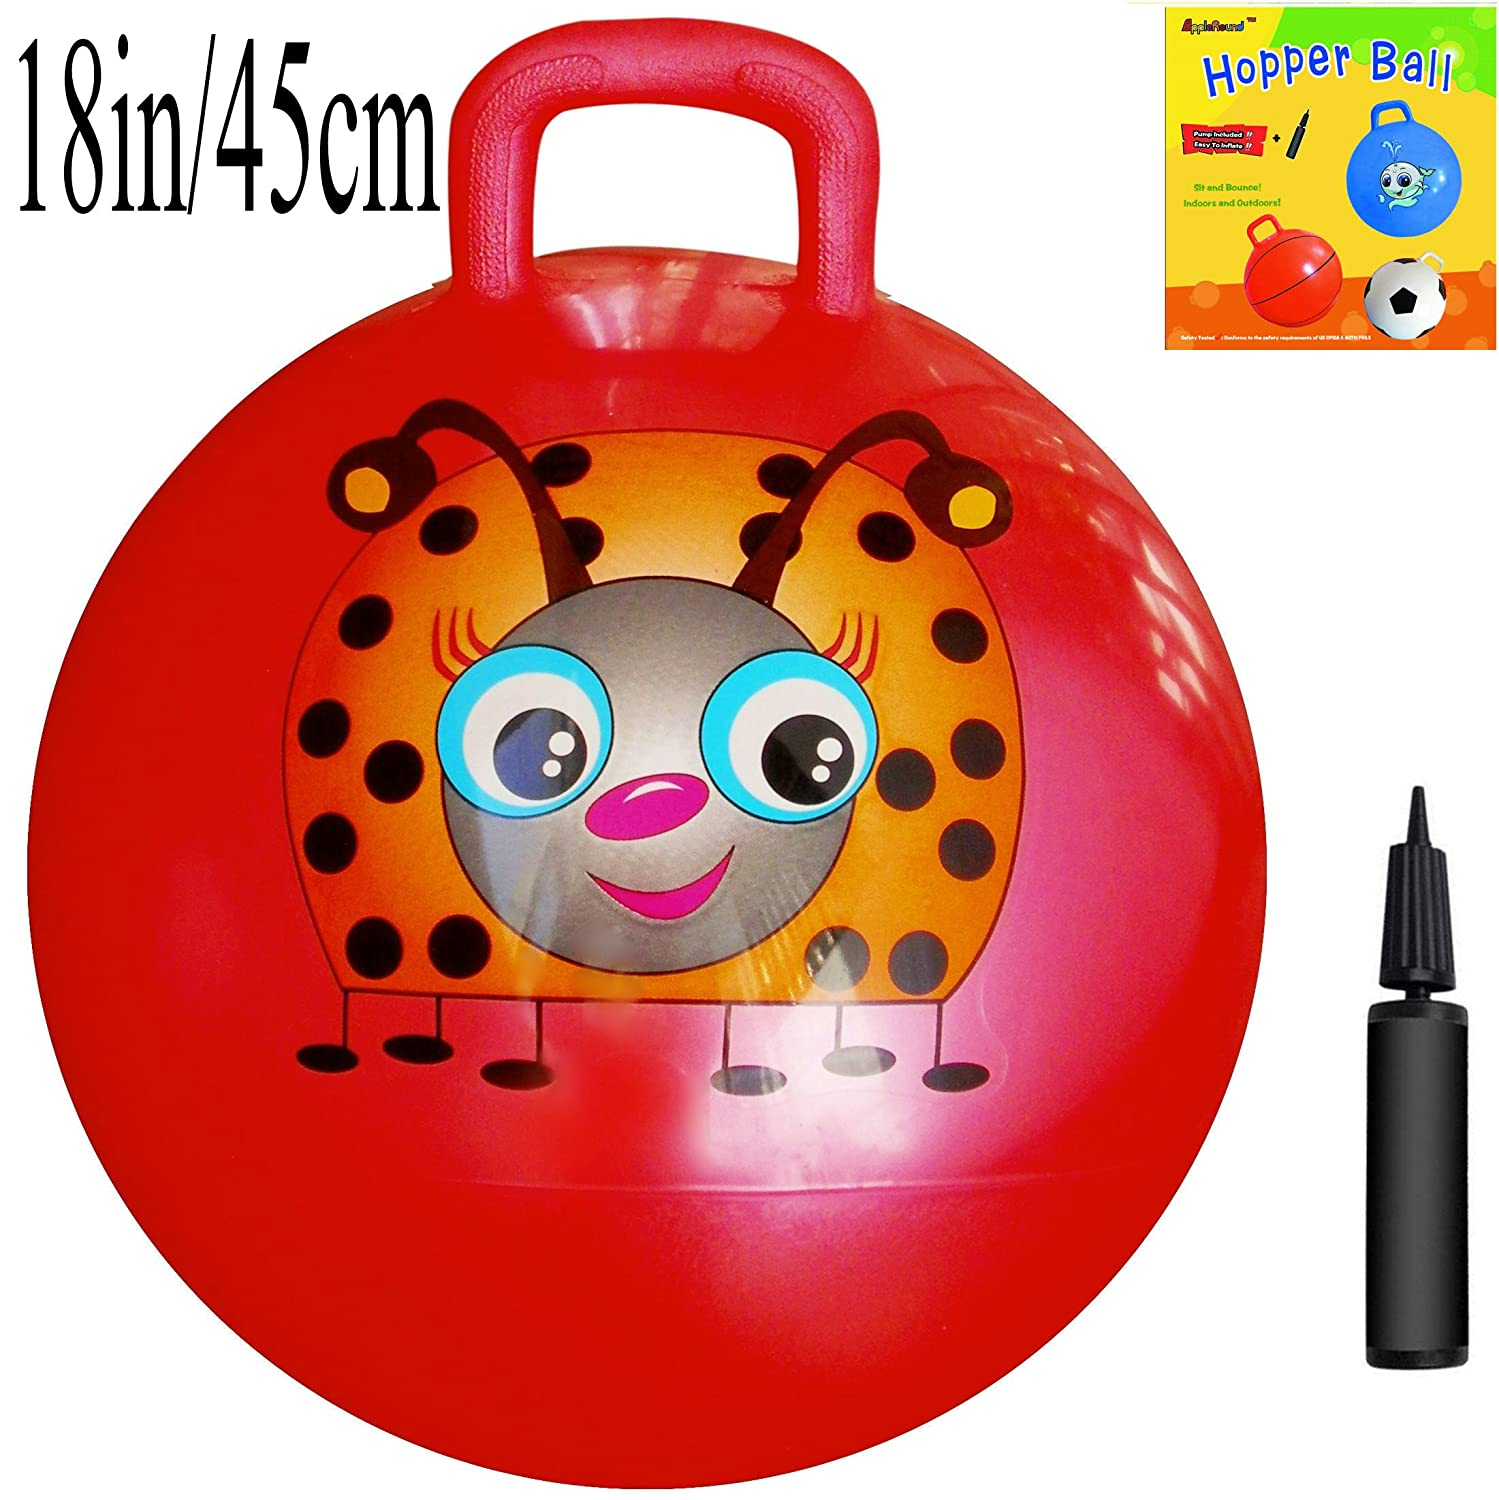 AppleRound Space Hopper Ball Red 18in 45cm Diameter for Ages 3 6 Pump Included Hop Ball Kangaroo Bouncer Hoppity Hop Sit and Bounce Jumping Ball